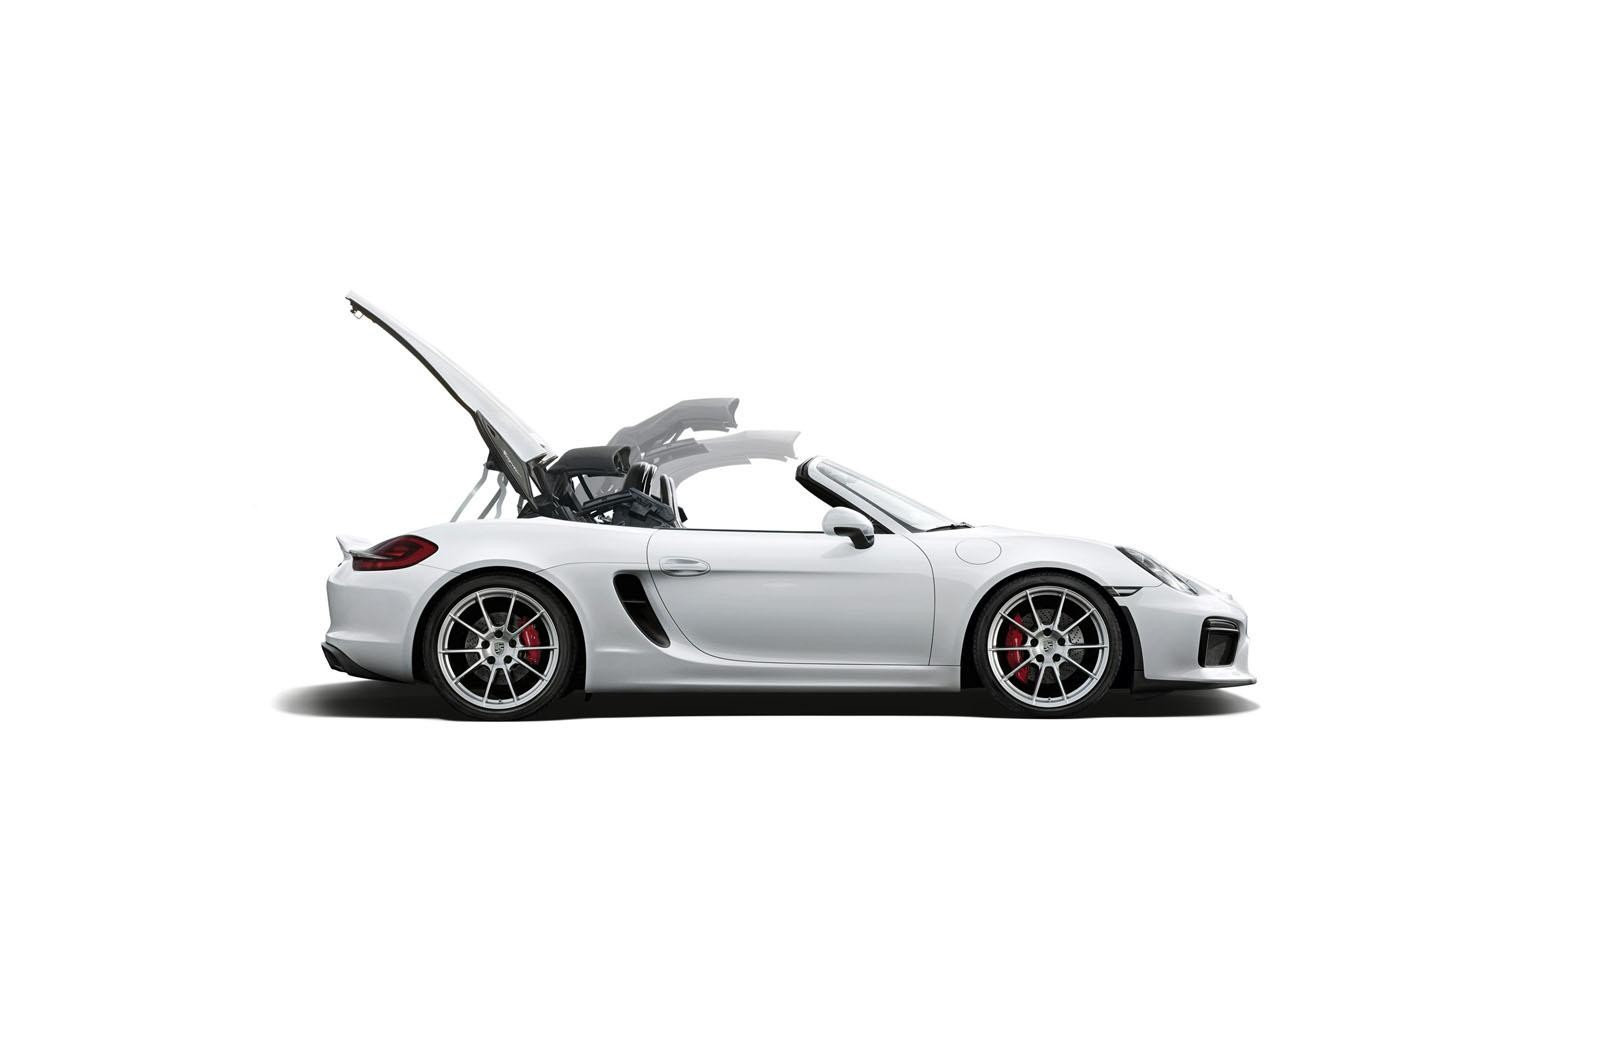 2016 porsche boxster spyder in detail roof demo configurator live video photo gallery. Black Bedroom Furniture Sets. Home Design Ideas